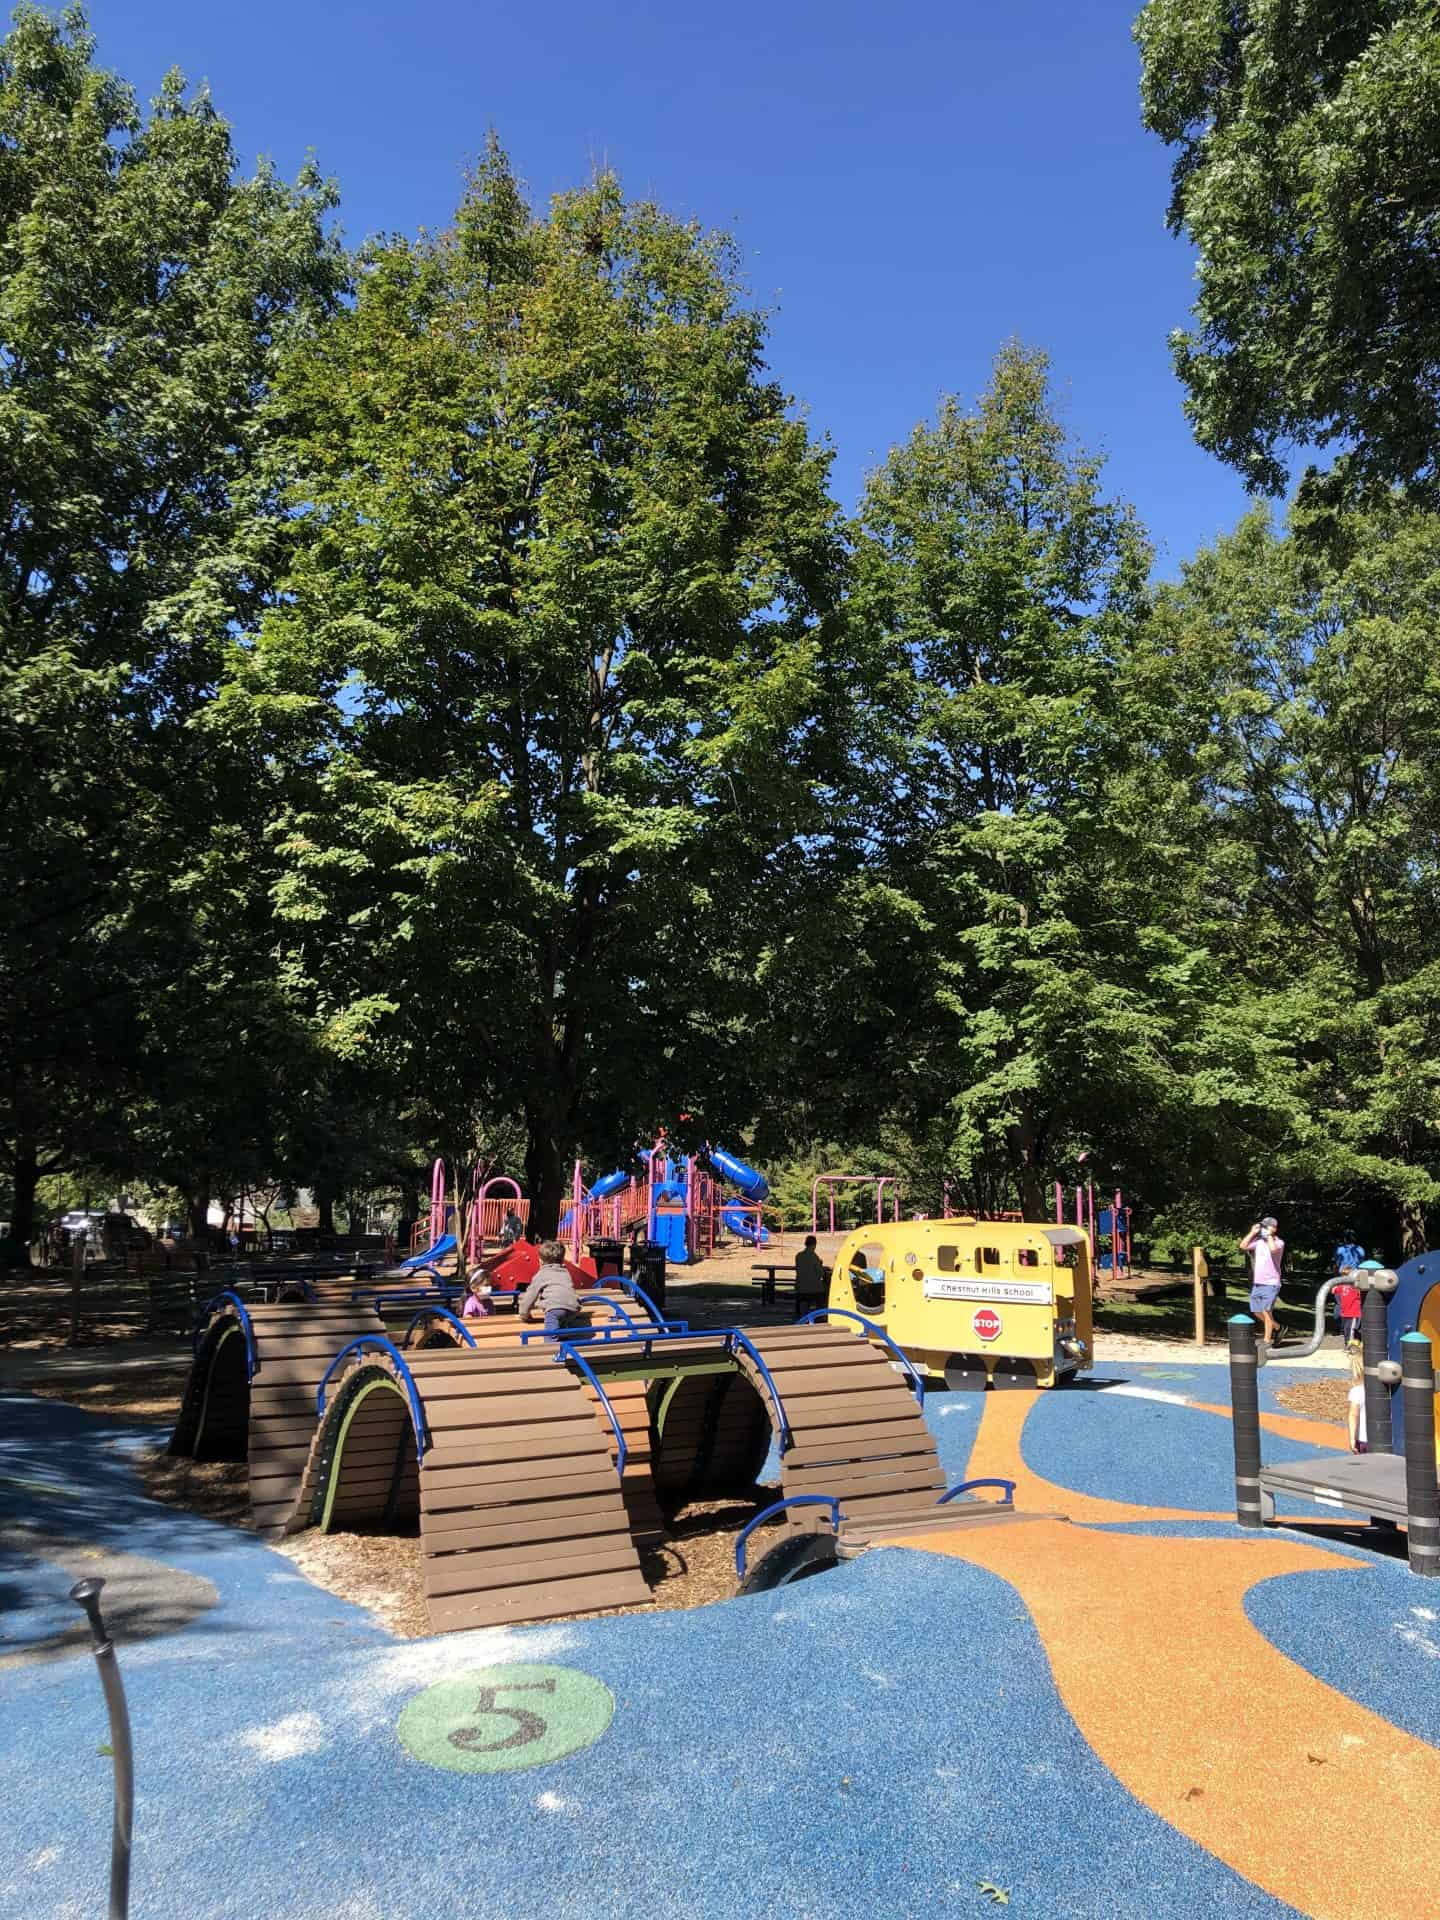 Preschool area of Chestnut Hills Best Playgrounds in Arlington Va